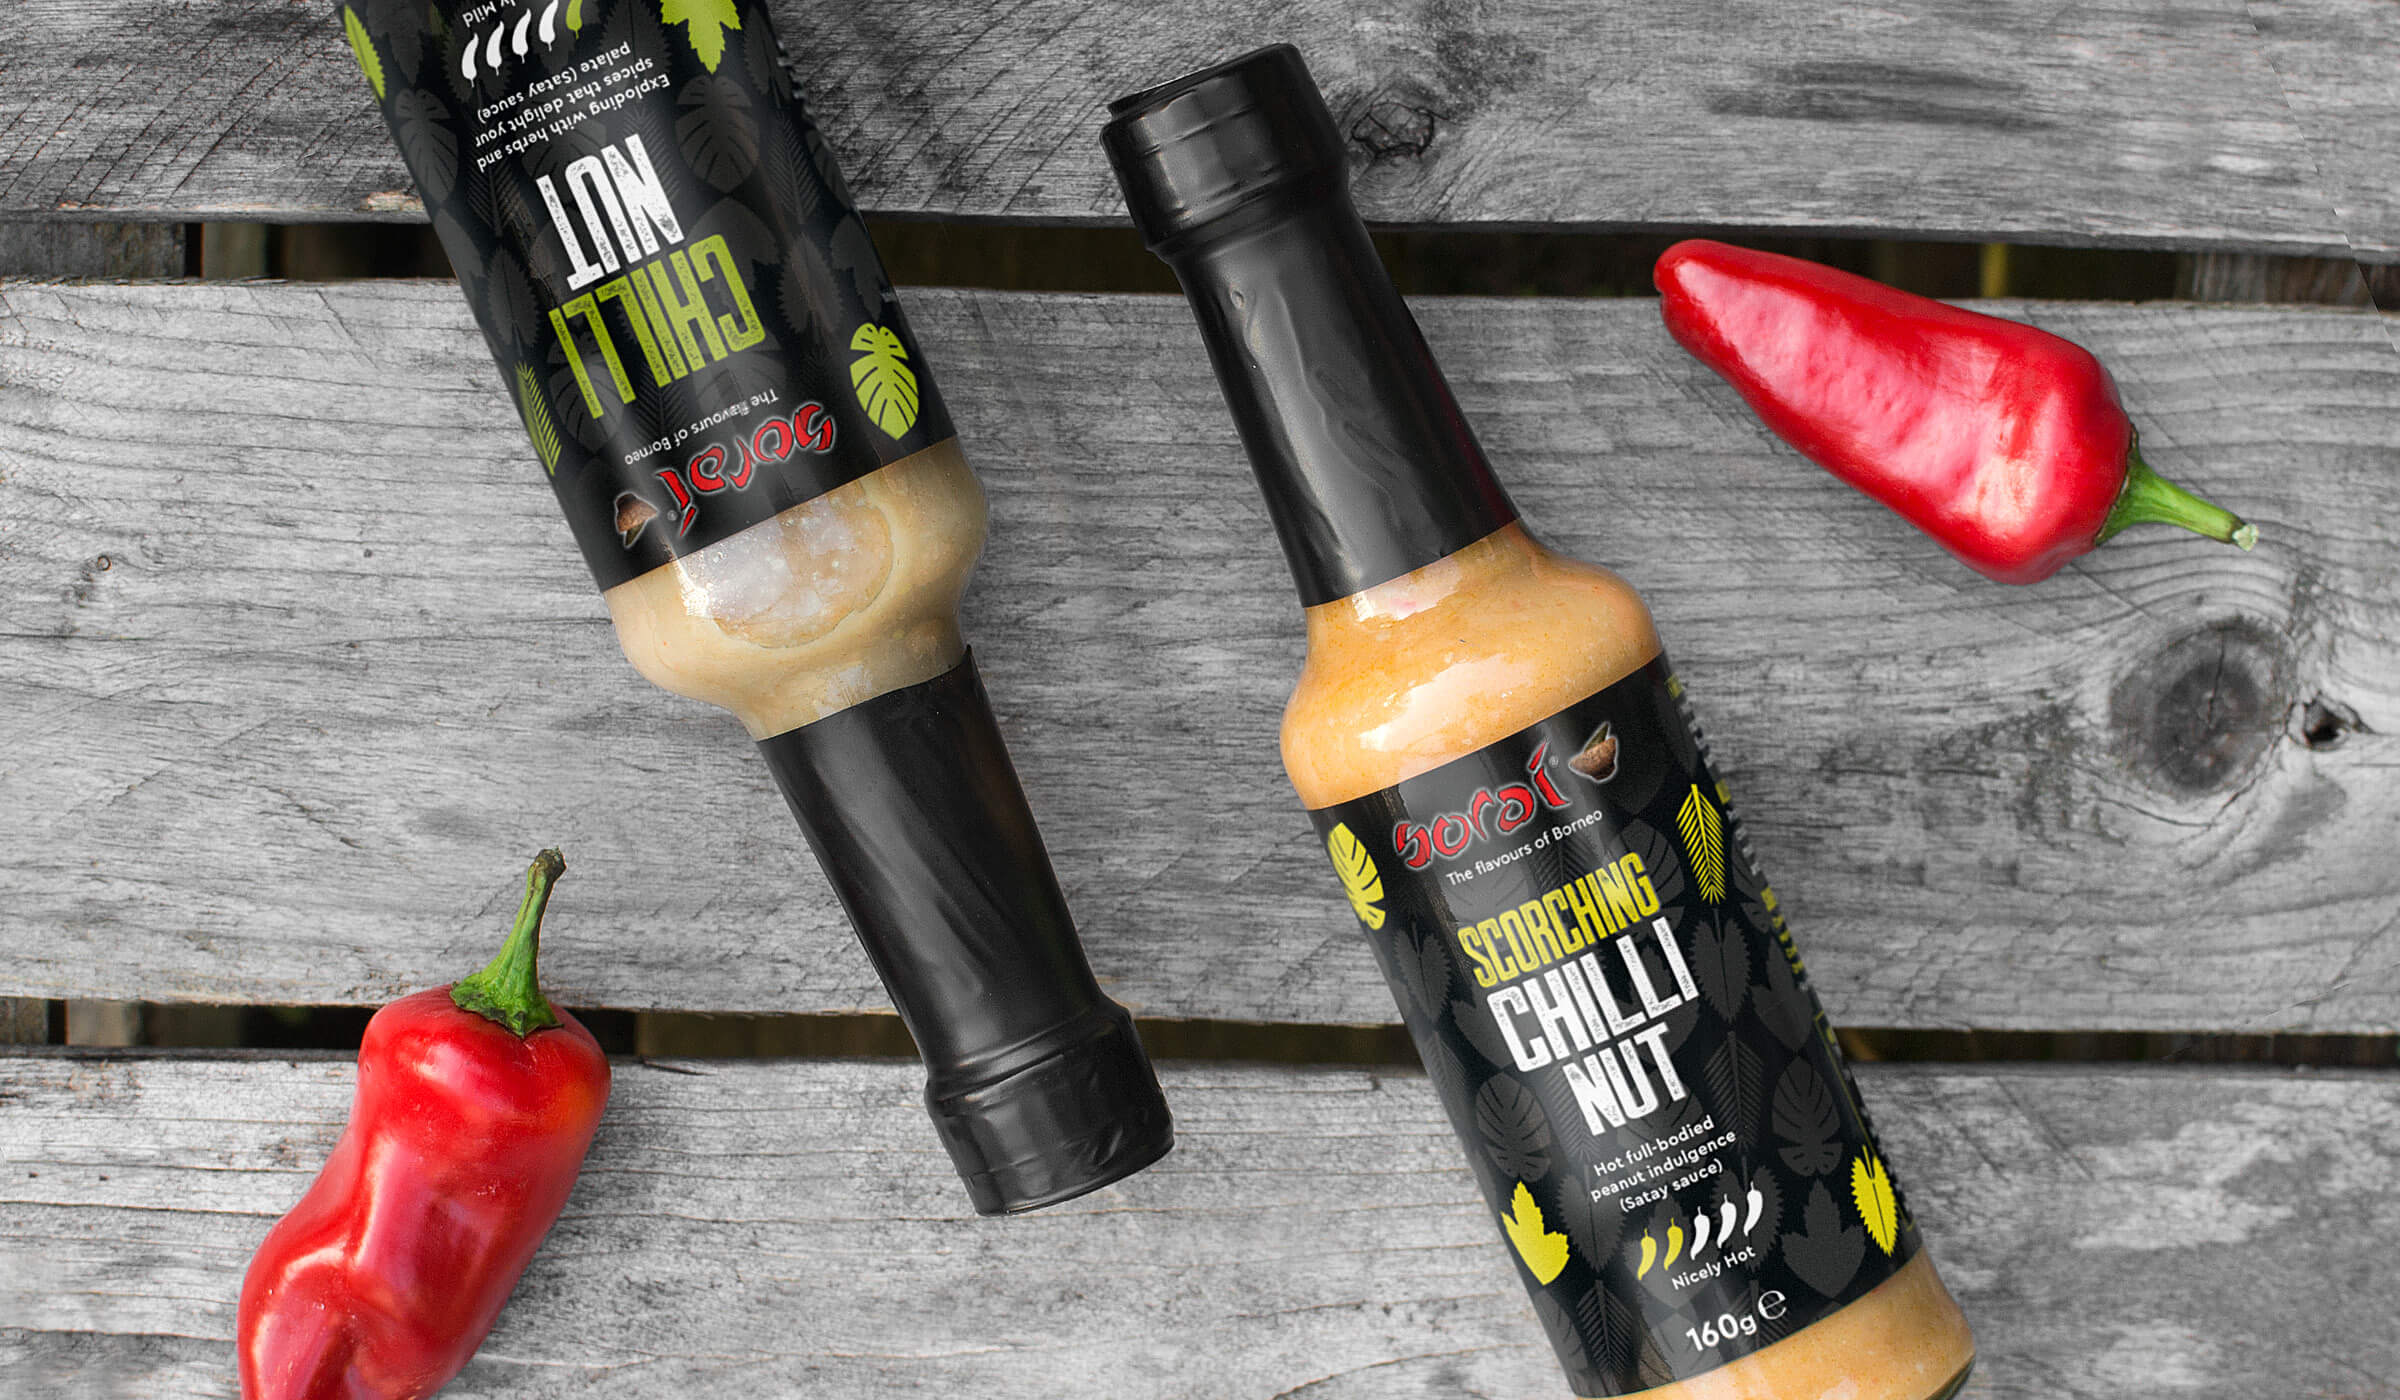 Hot chilli sauce packaging design